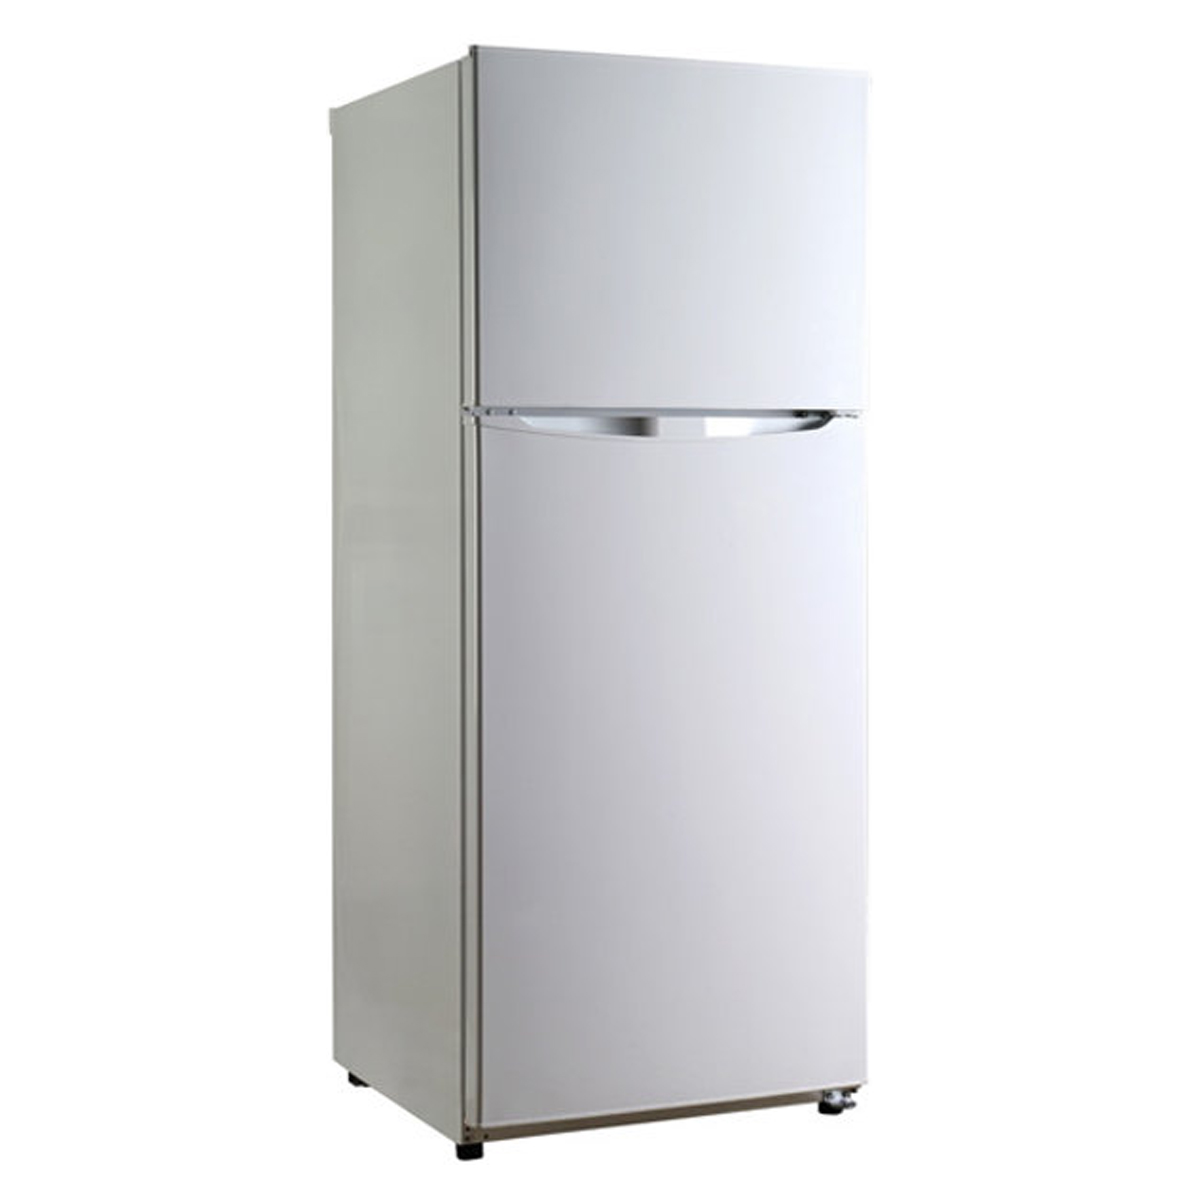 Esatto RTM400X 400L Top Mount Fridge